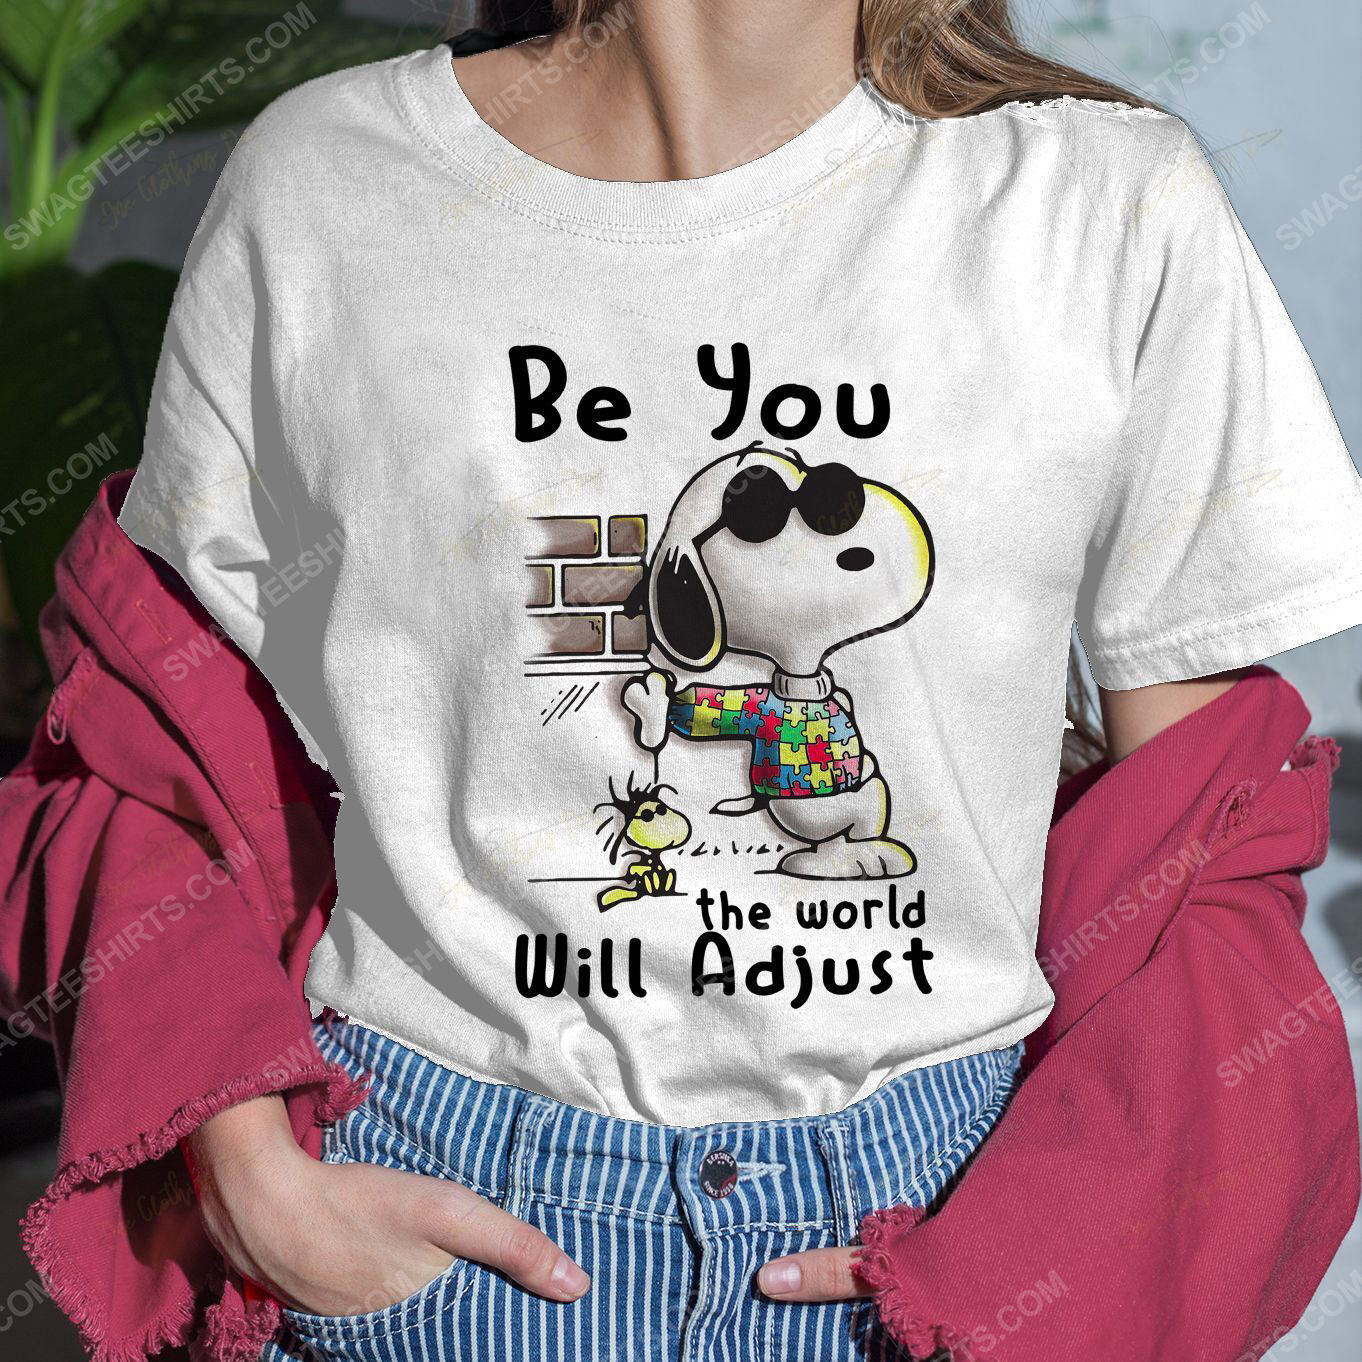 Snoopy charlie brown be you the world will adjust shirt 2(1)